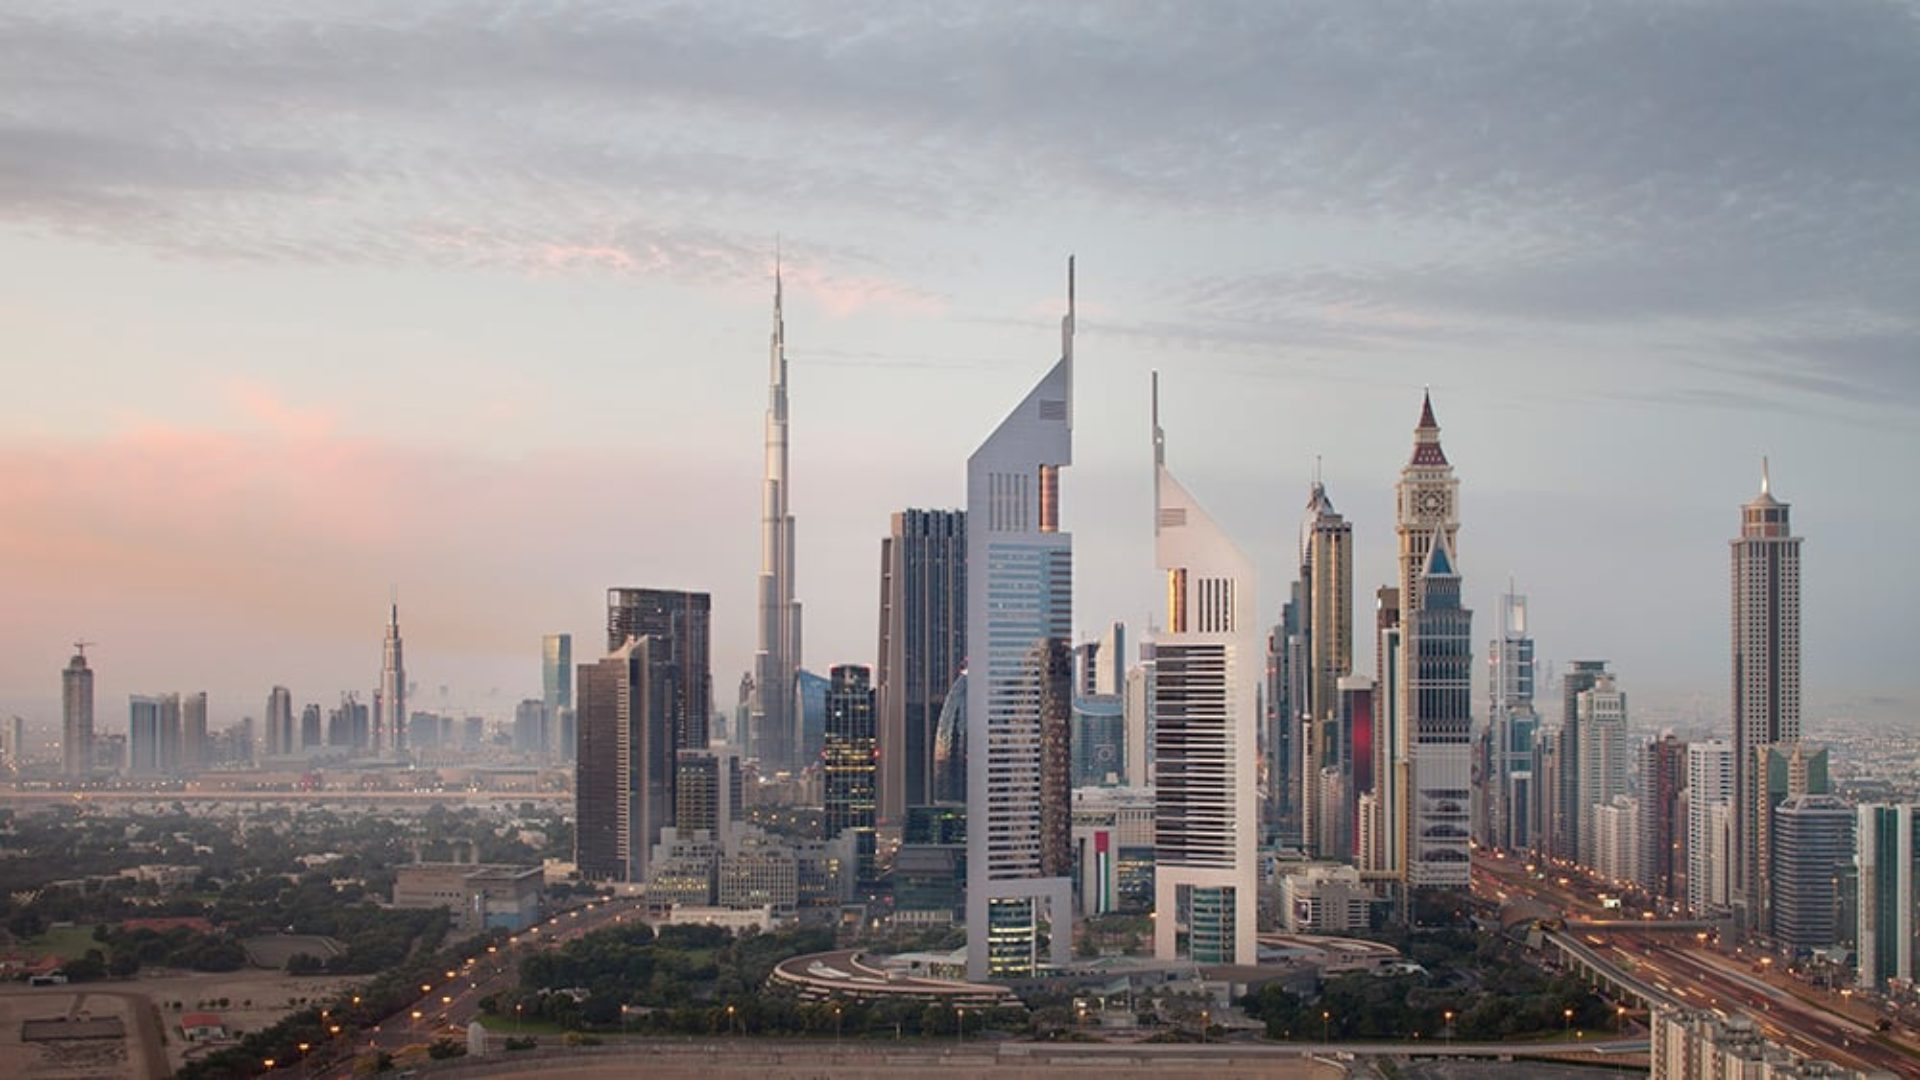 Aerial view of Jumeirah Emirates Towers